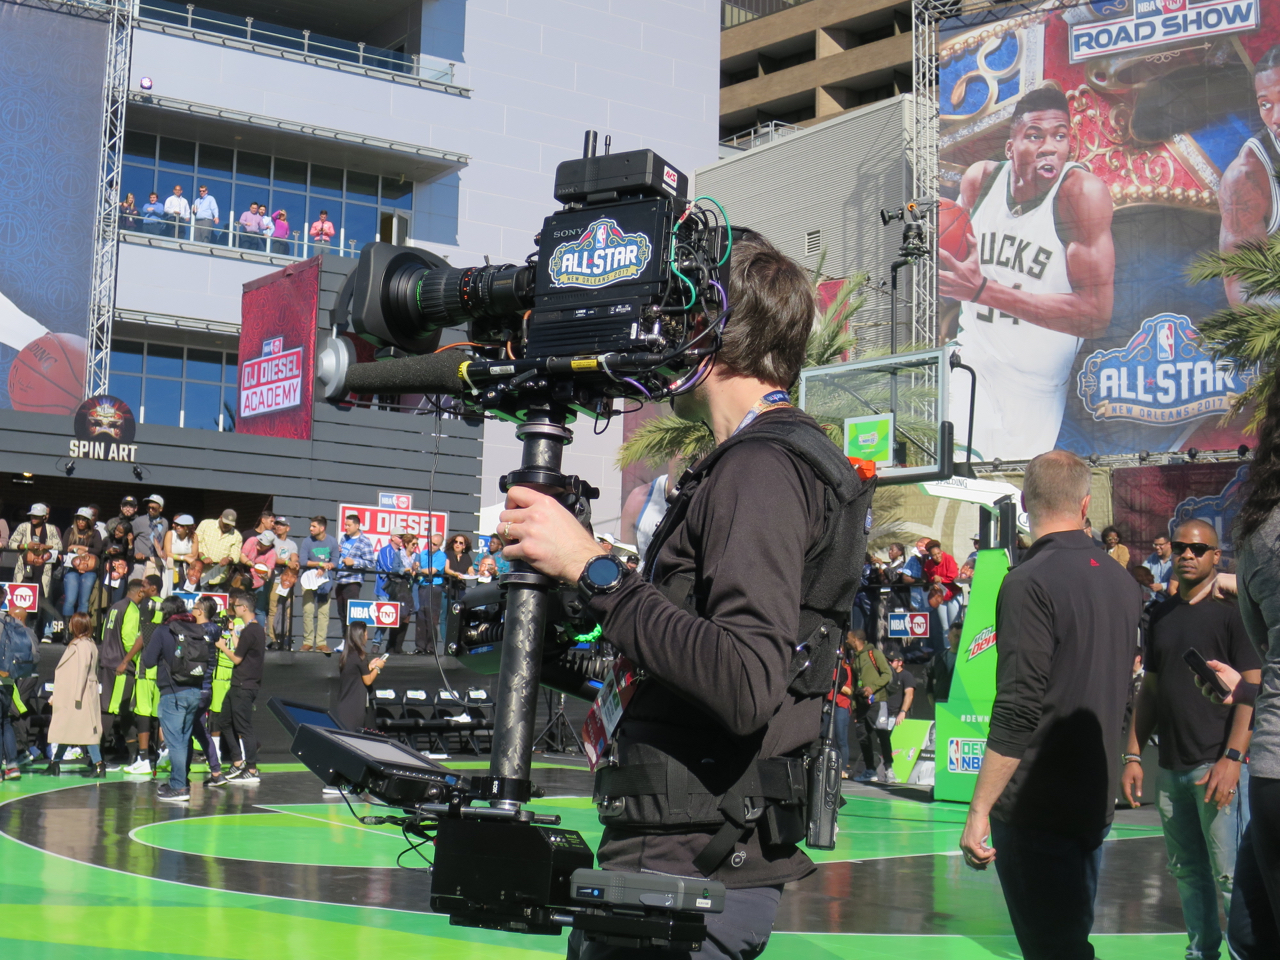 One of the Steadicams covering the Dew NBA3X final yesterday.